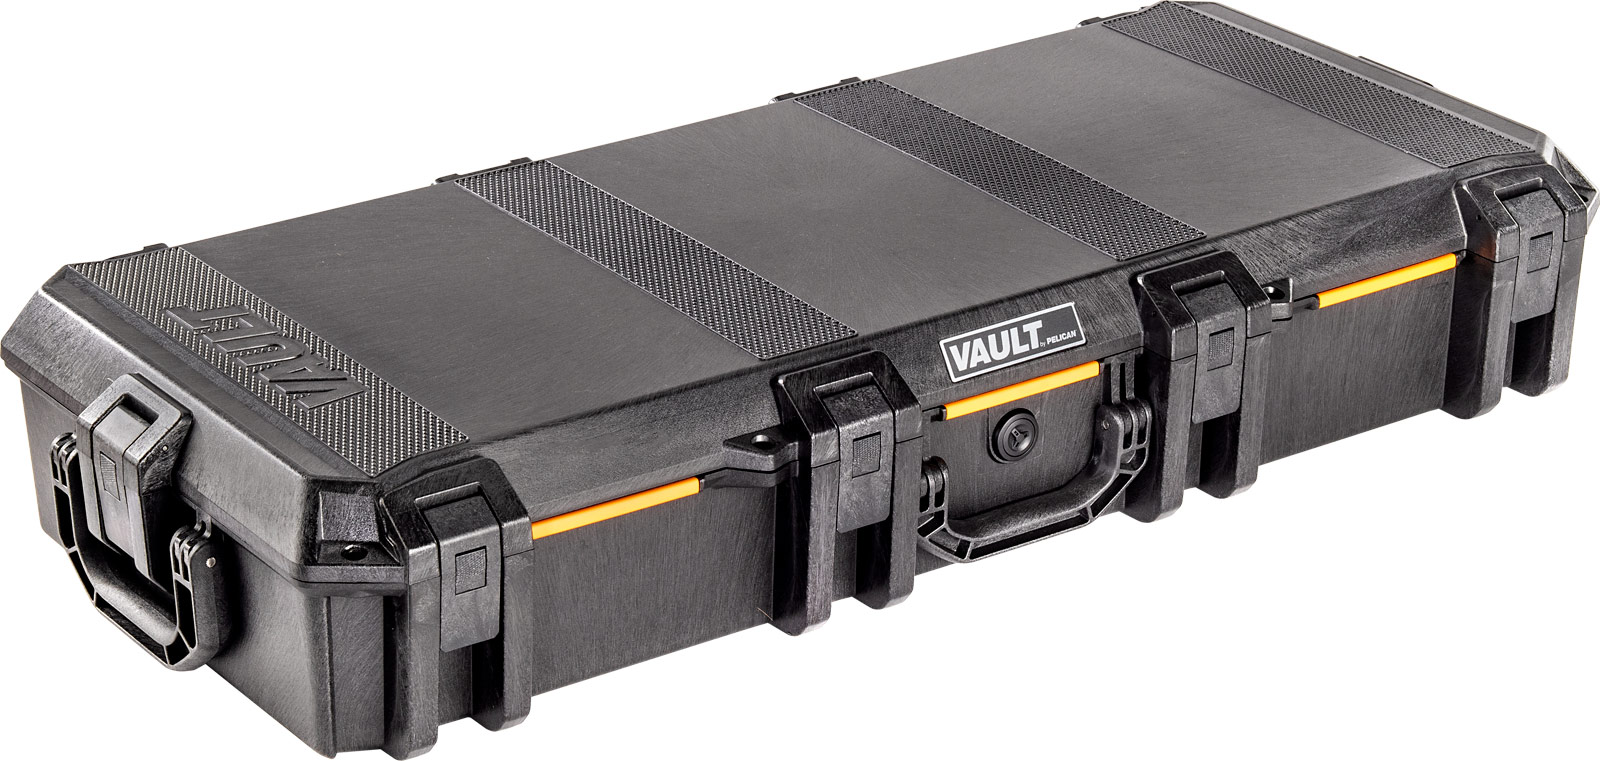 buy pelican vault v700 shop gun case